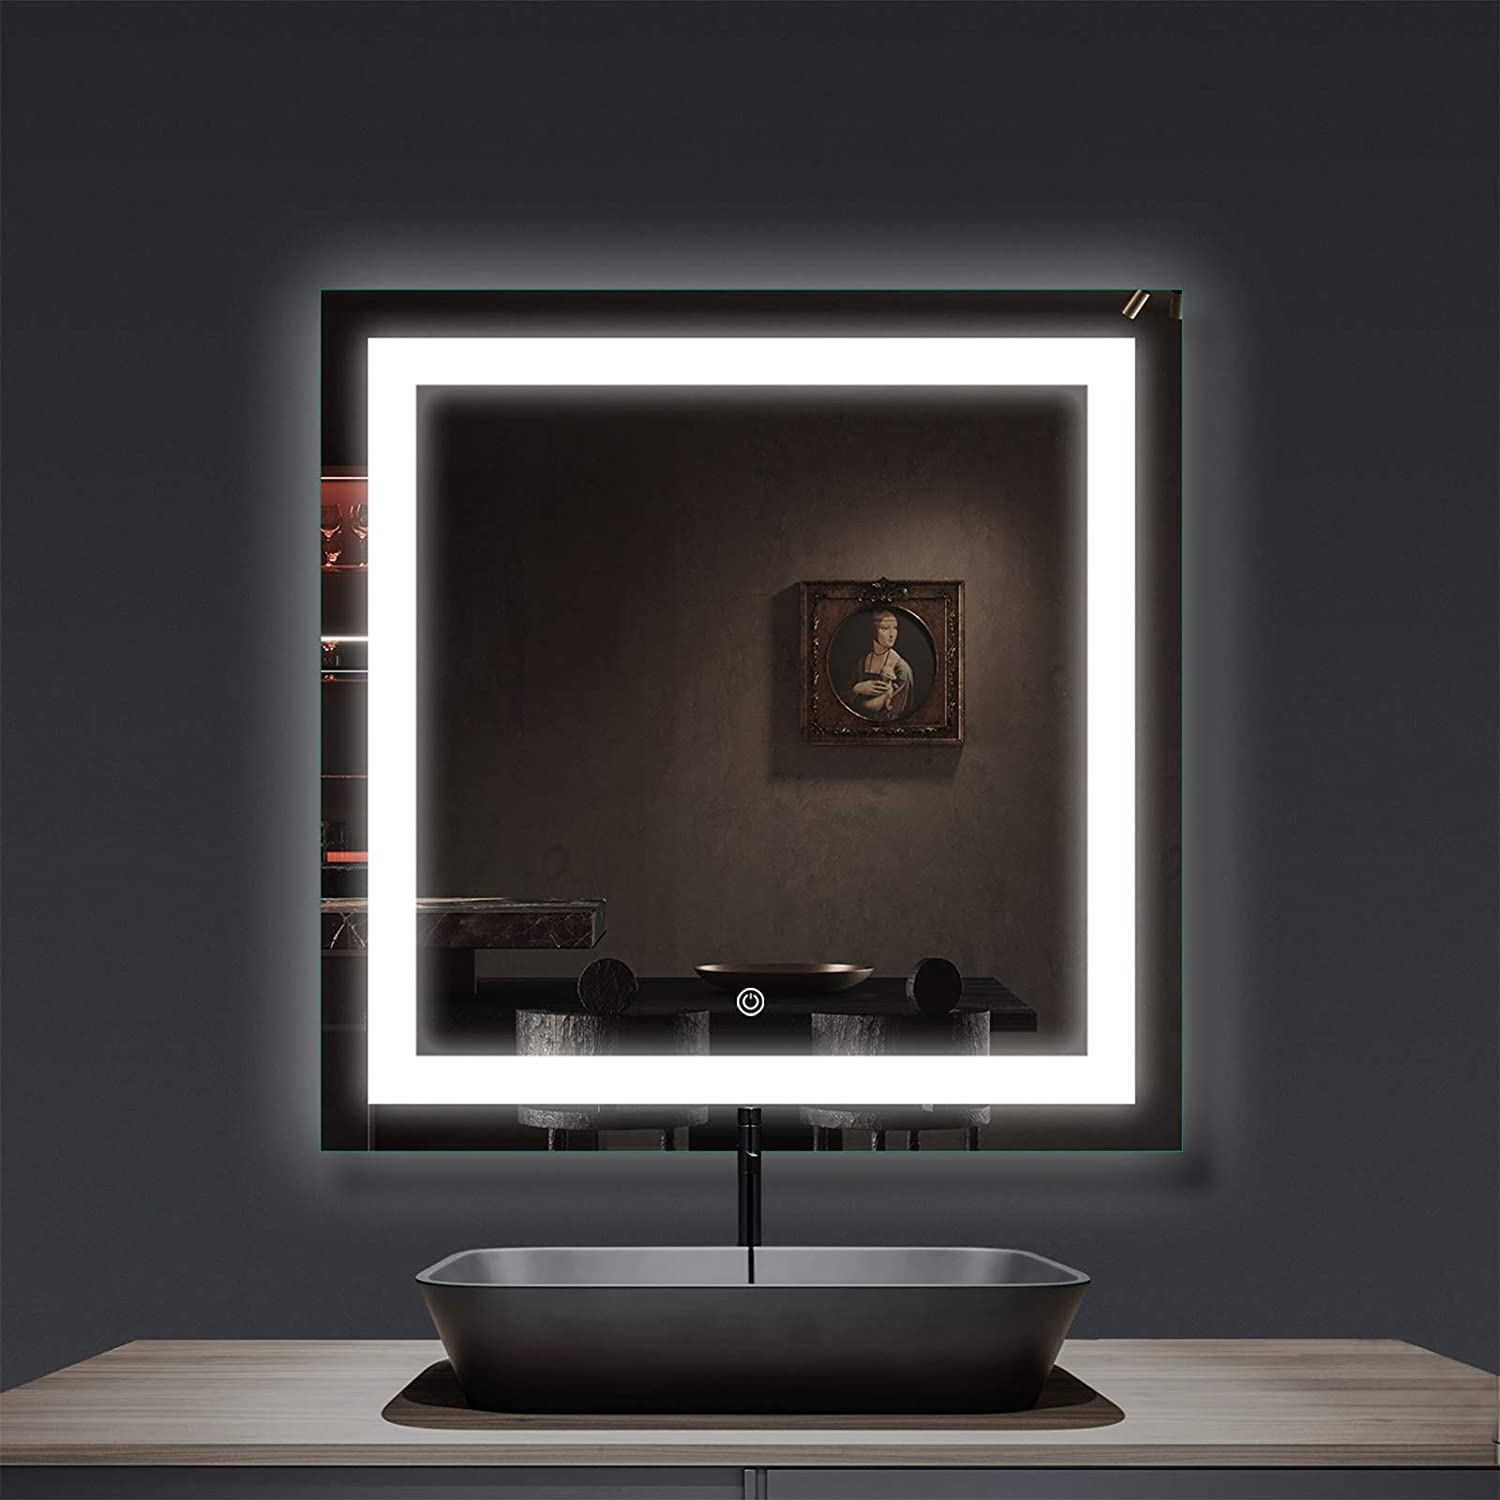 smartrun Square Wall Mounted LED Lighted Backlit Mirror 36x36 Bathroom Vanity Mirrors with Control Button Dimmable Light JAZZ3636